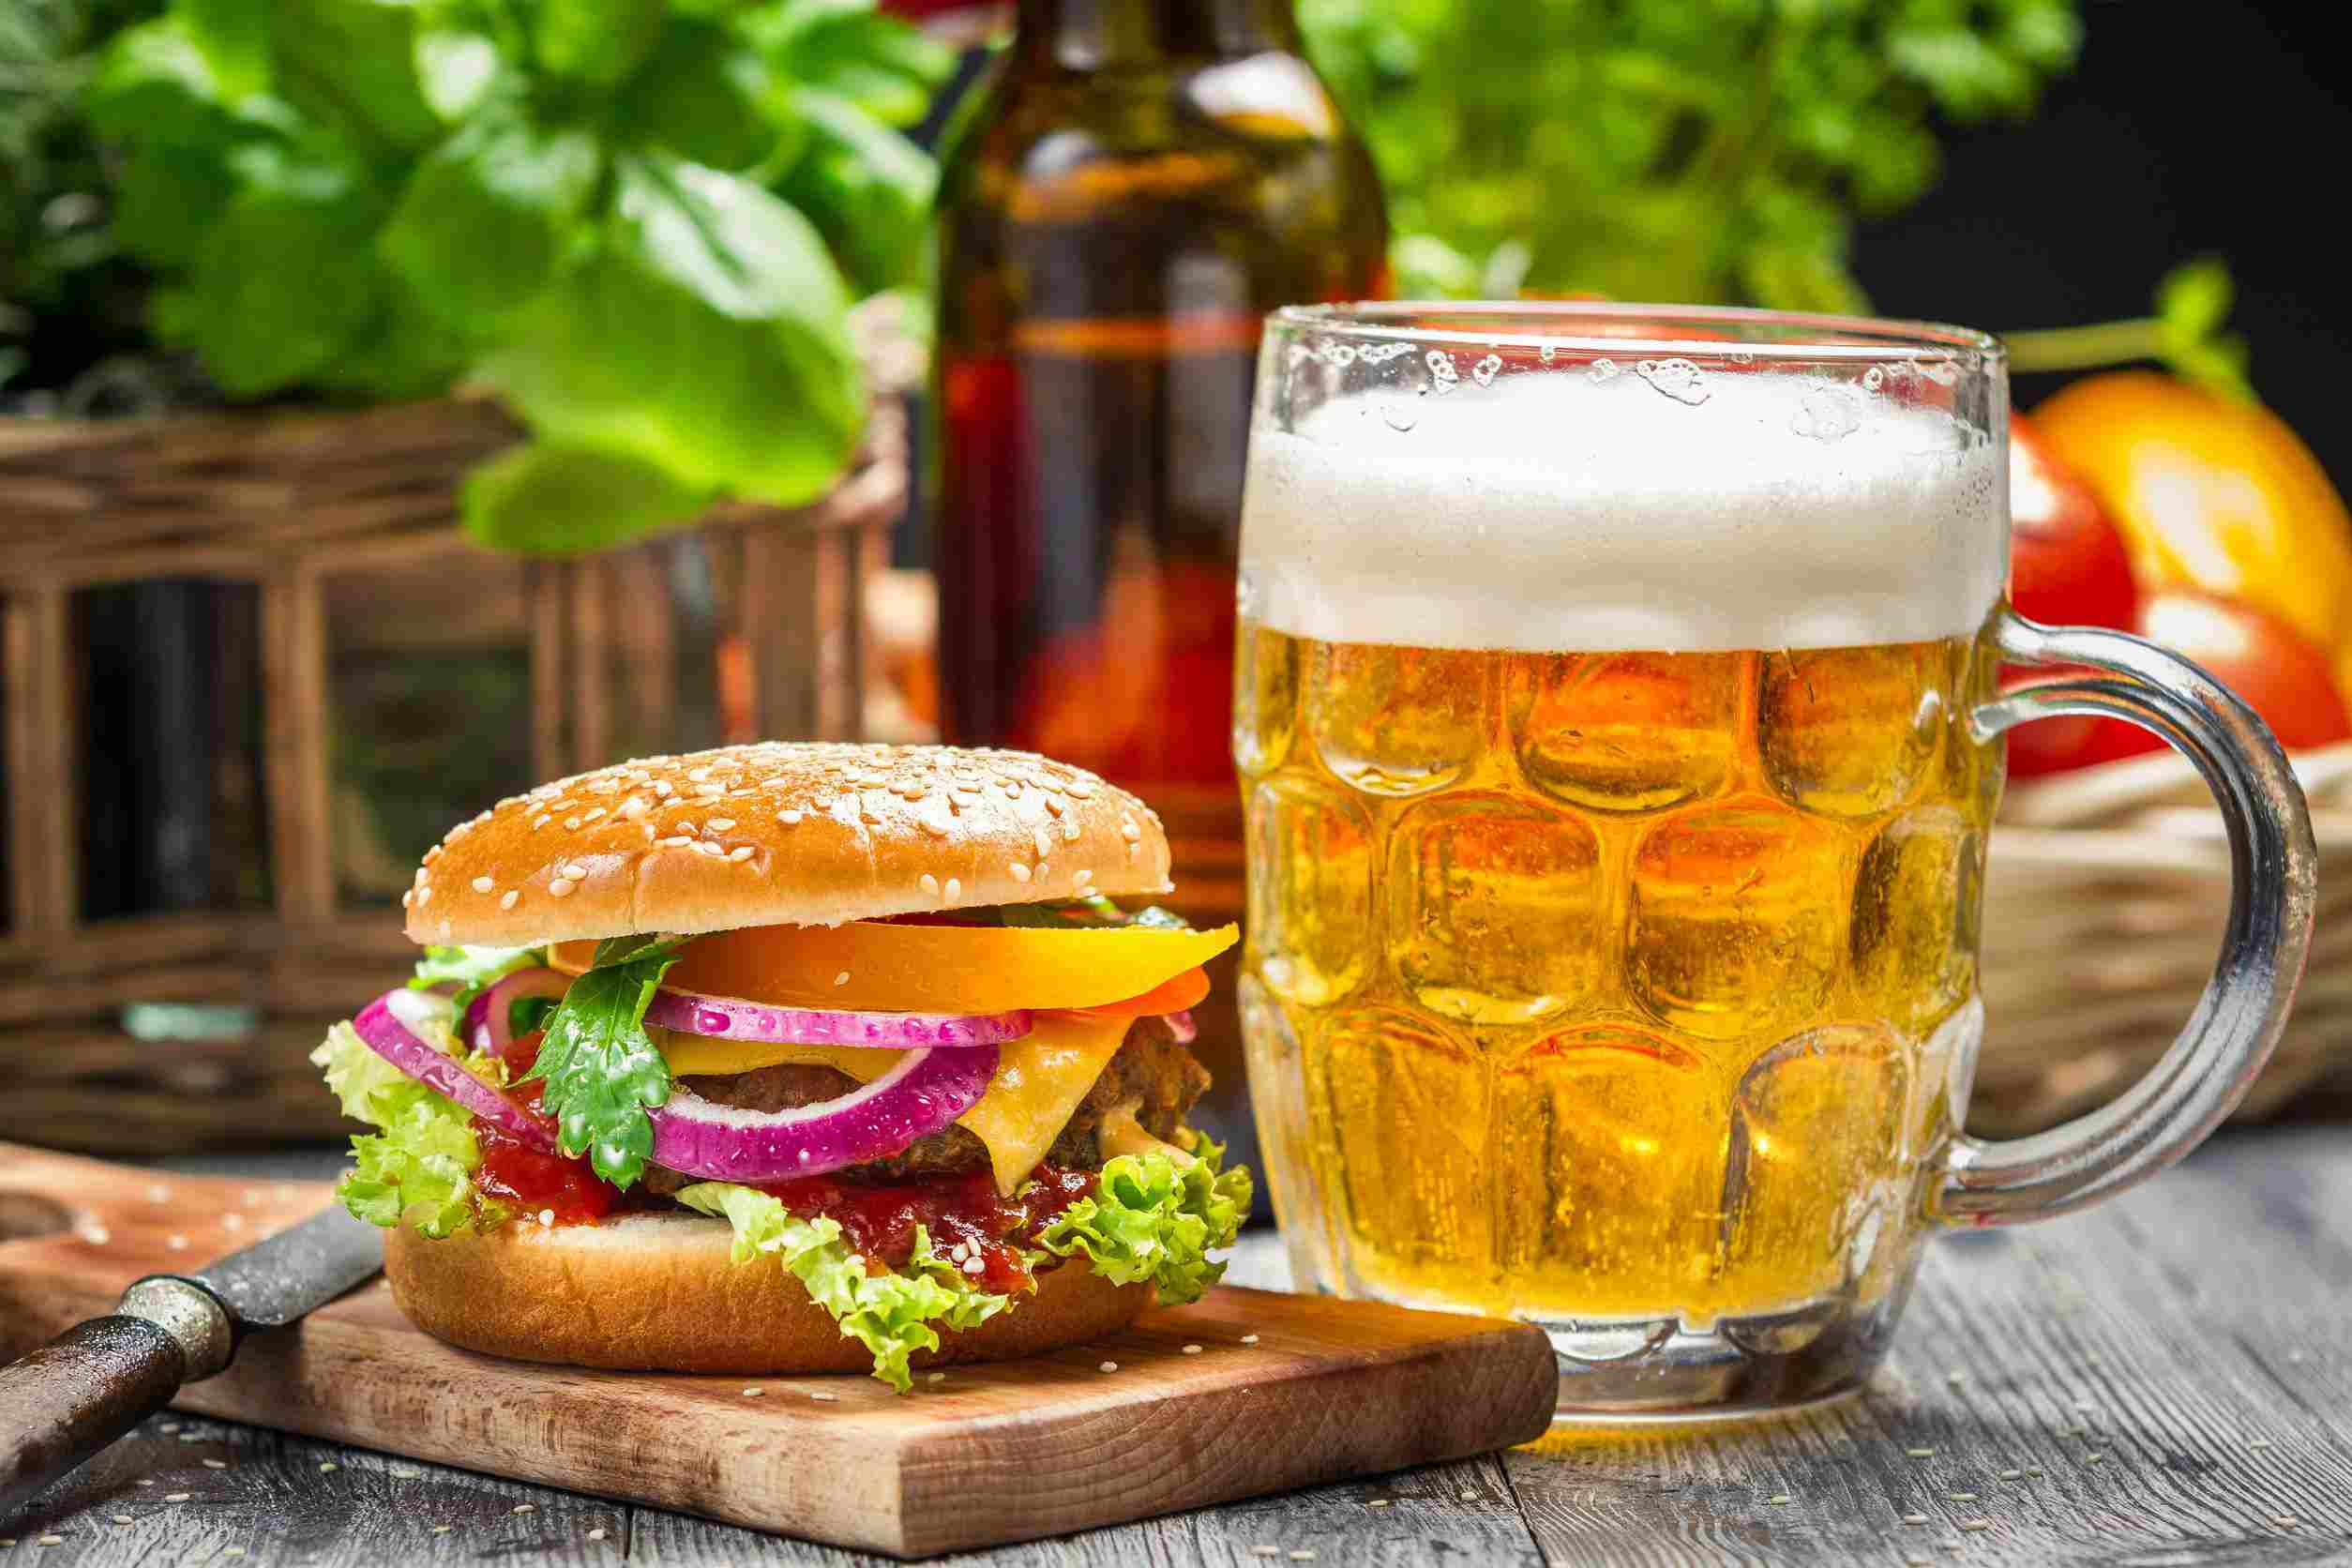 Cheese burger with red onions, lettuce, and ketchup with a sesame seed bun. To the right of the burger is a mug of lite beer